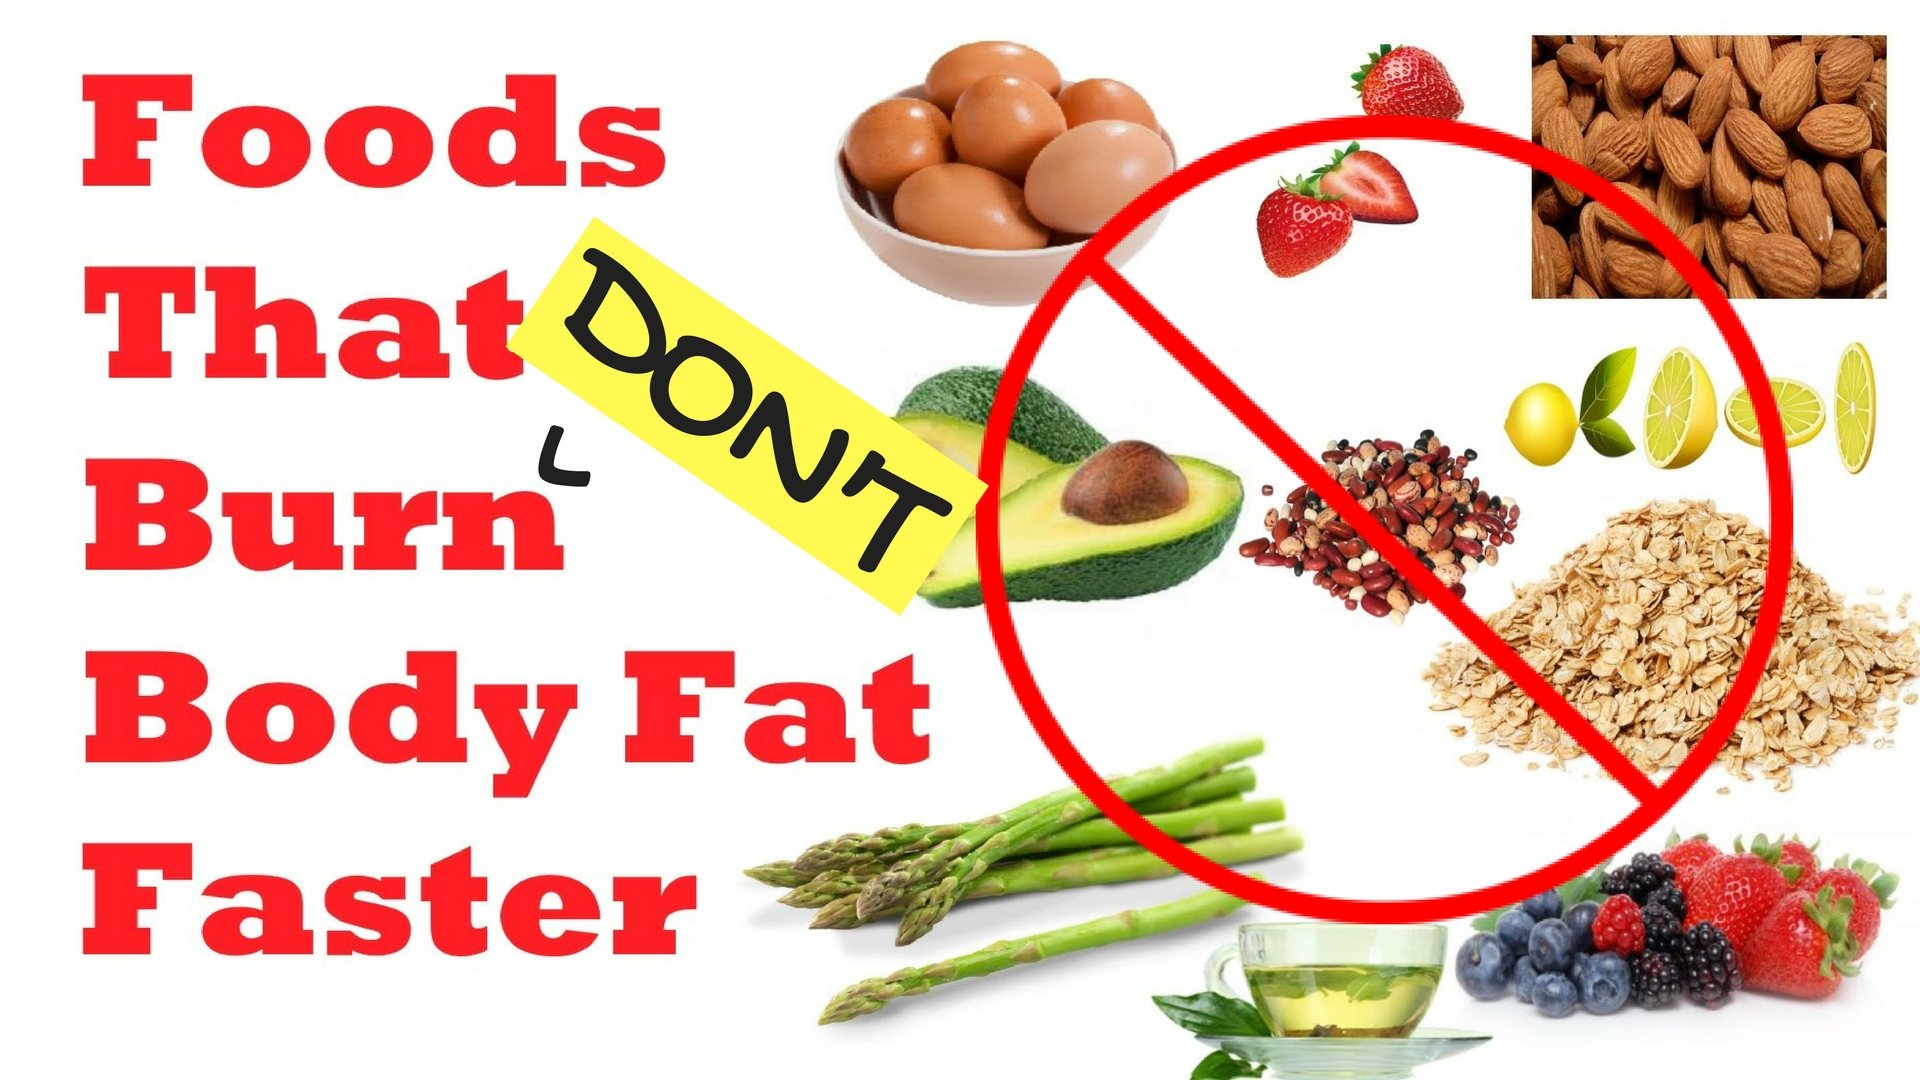 Foods that DON'T Burn Body Fat Faster